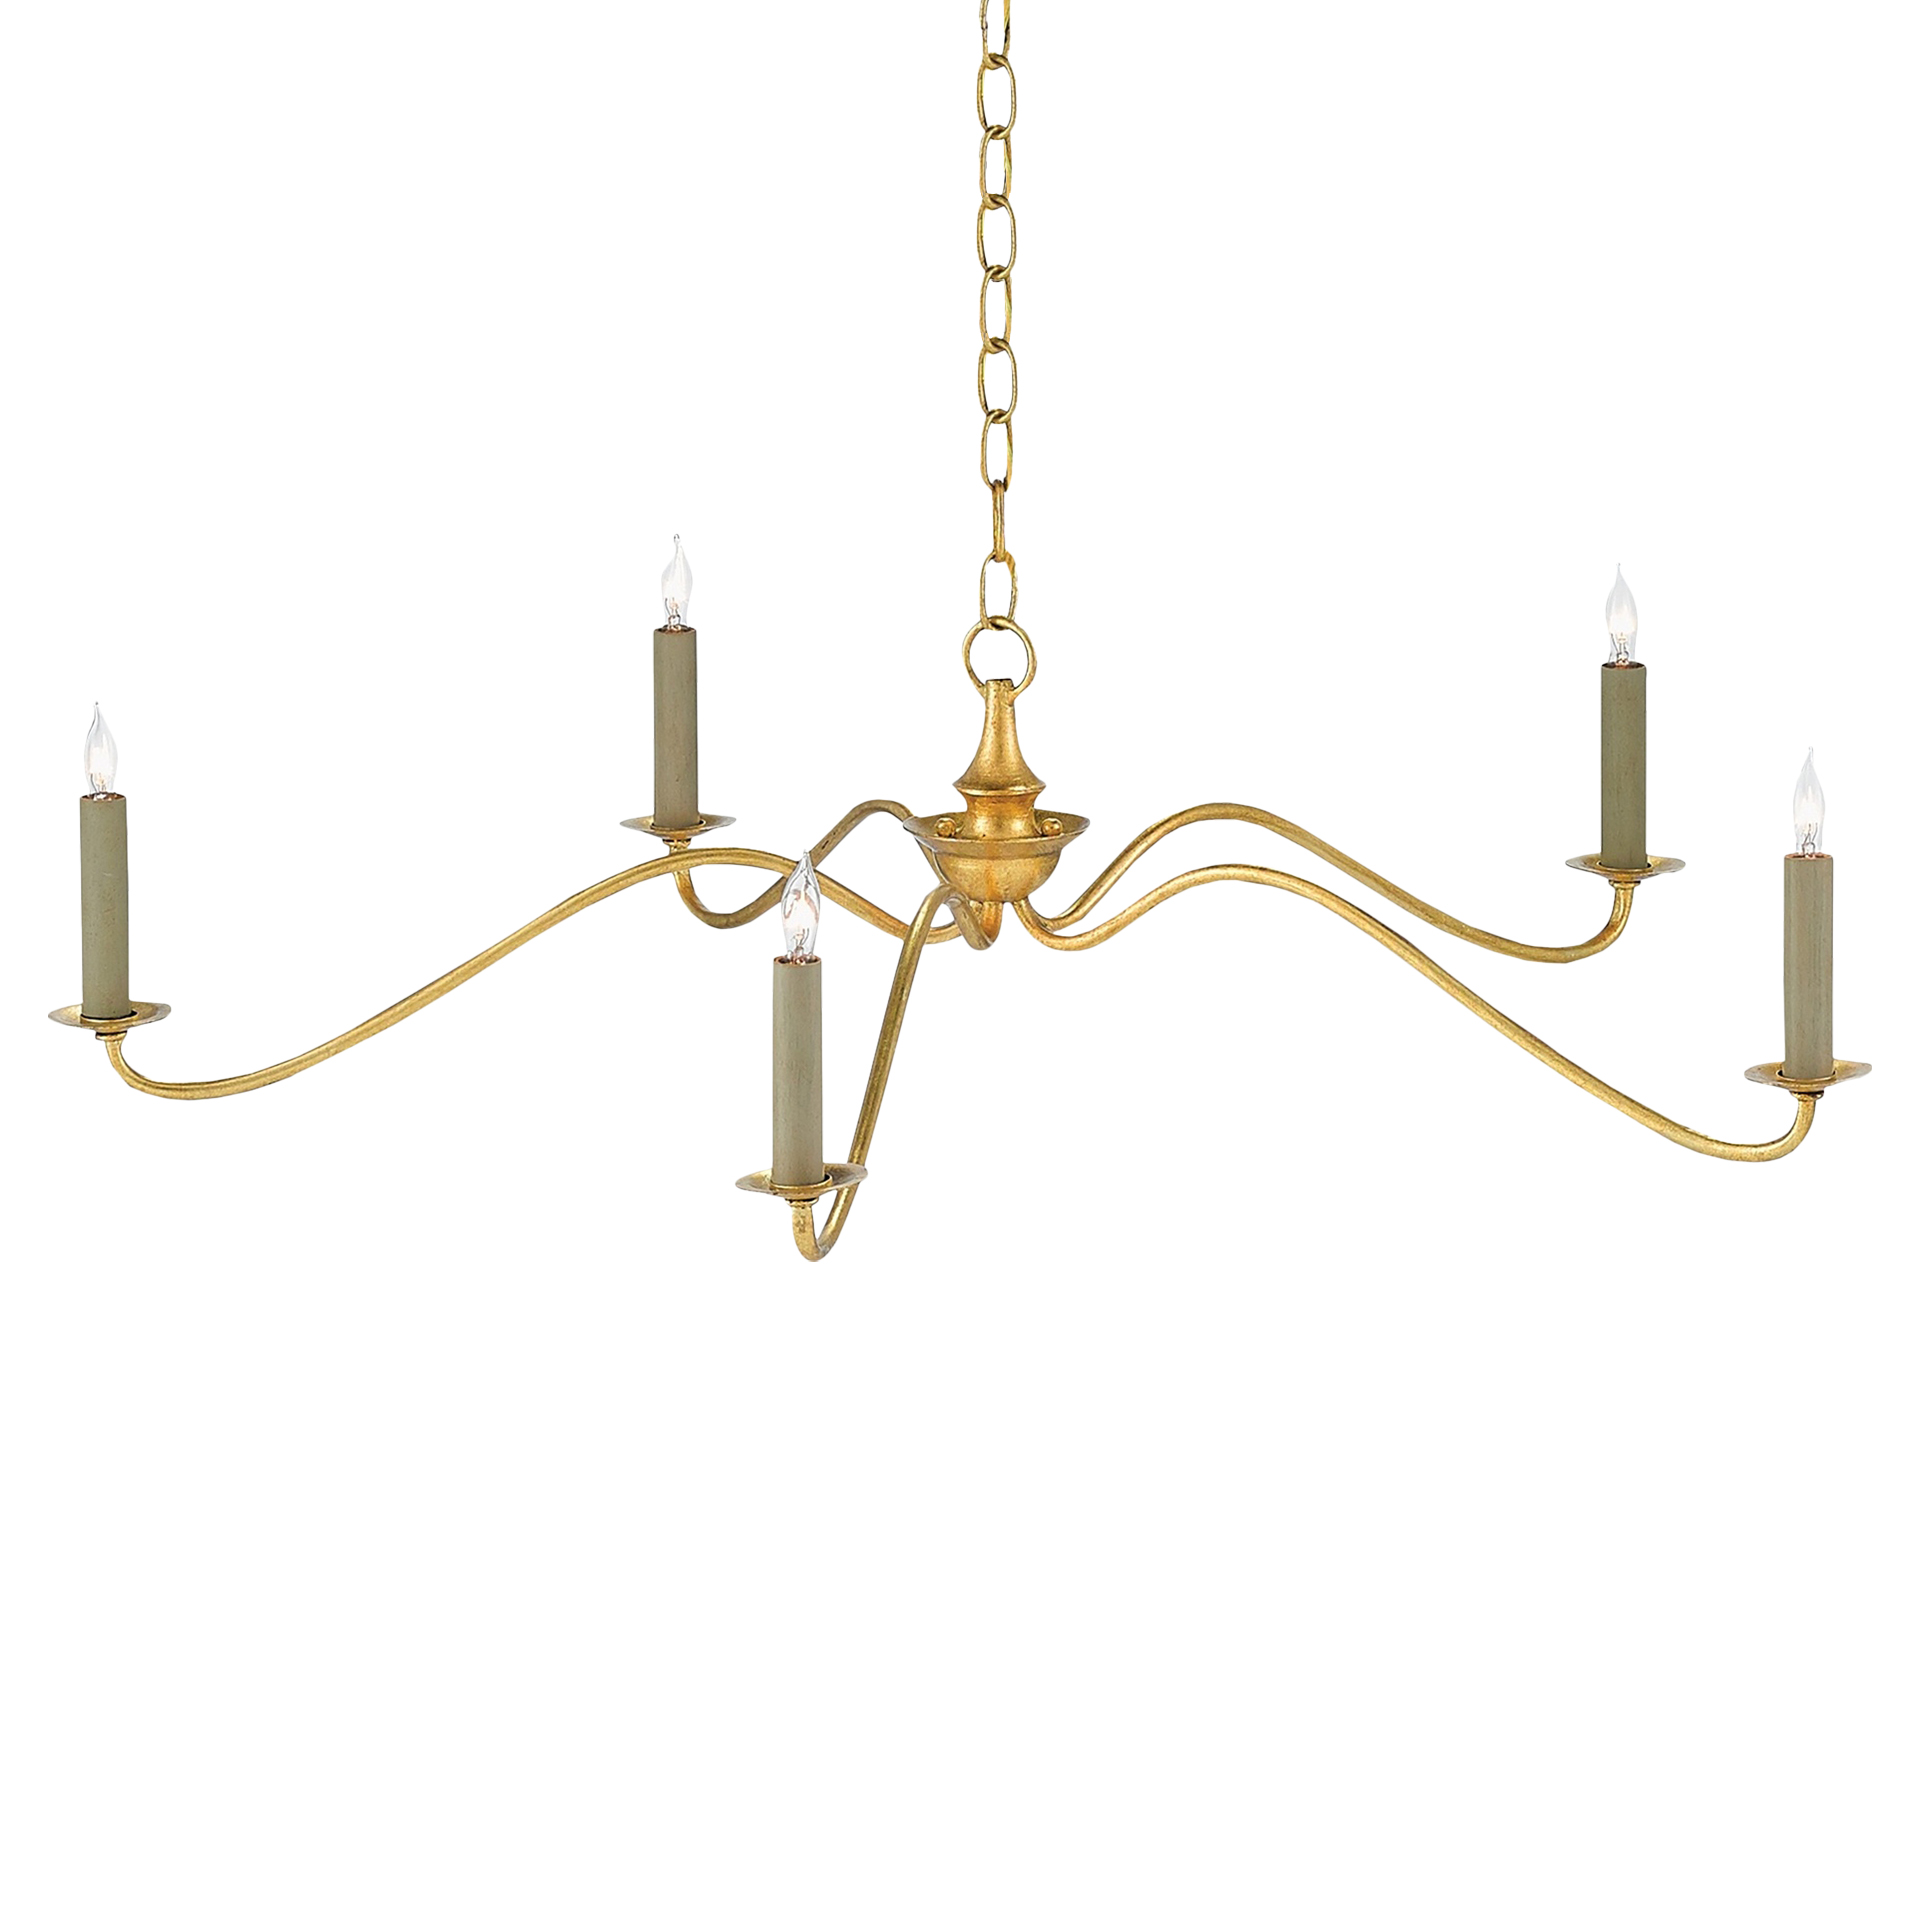 Biarritz French Country Minimal Gold Leaf Chandelier